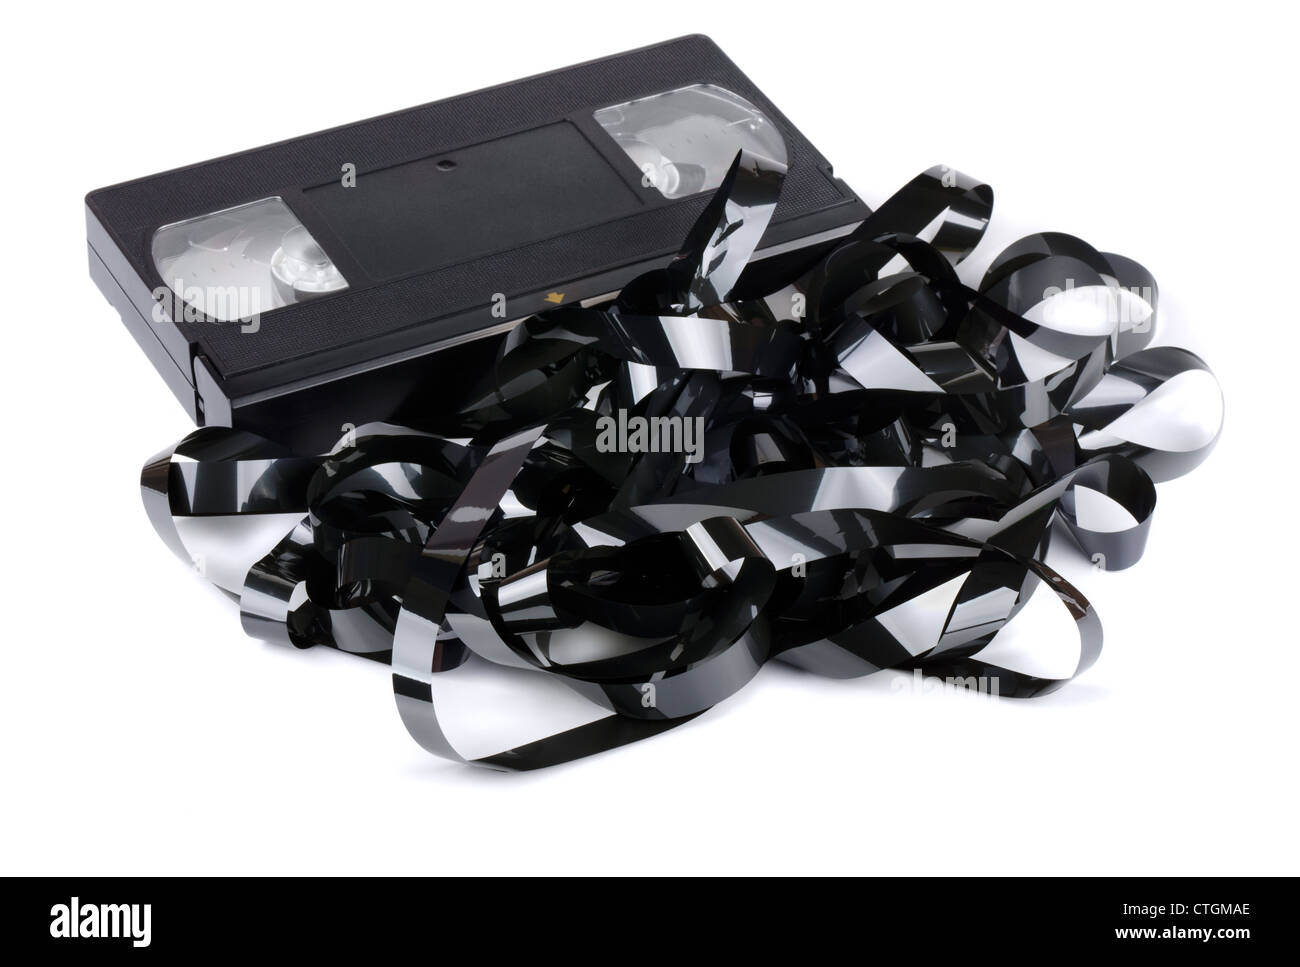 VHS video cassette with tangled video tape isolated on white - Stock Image